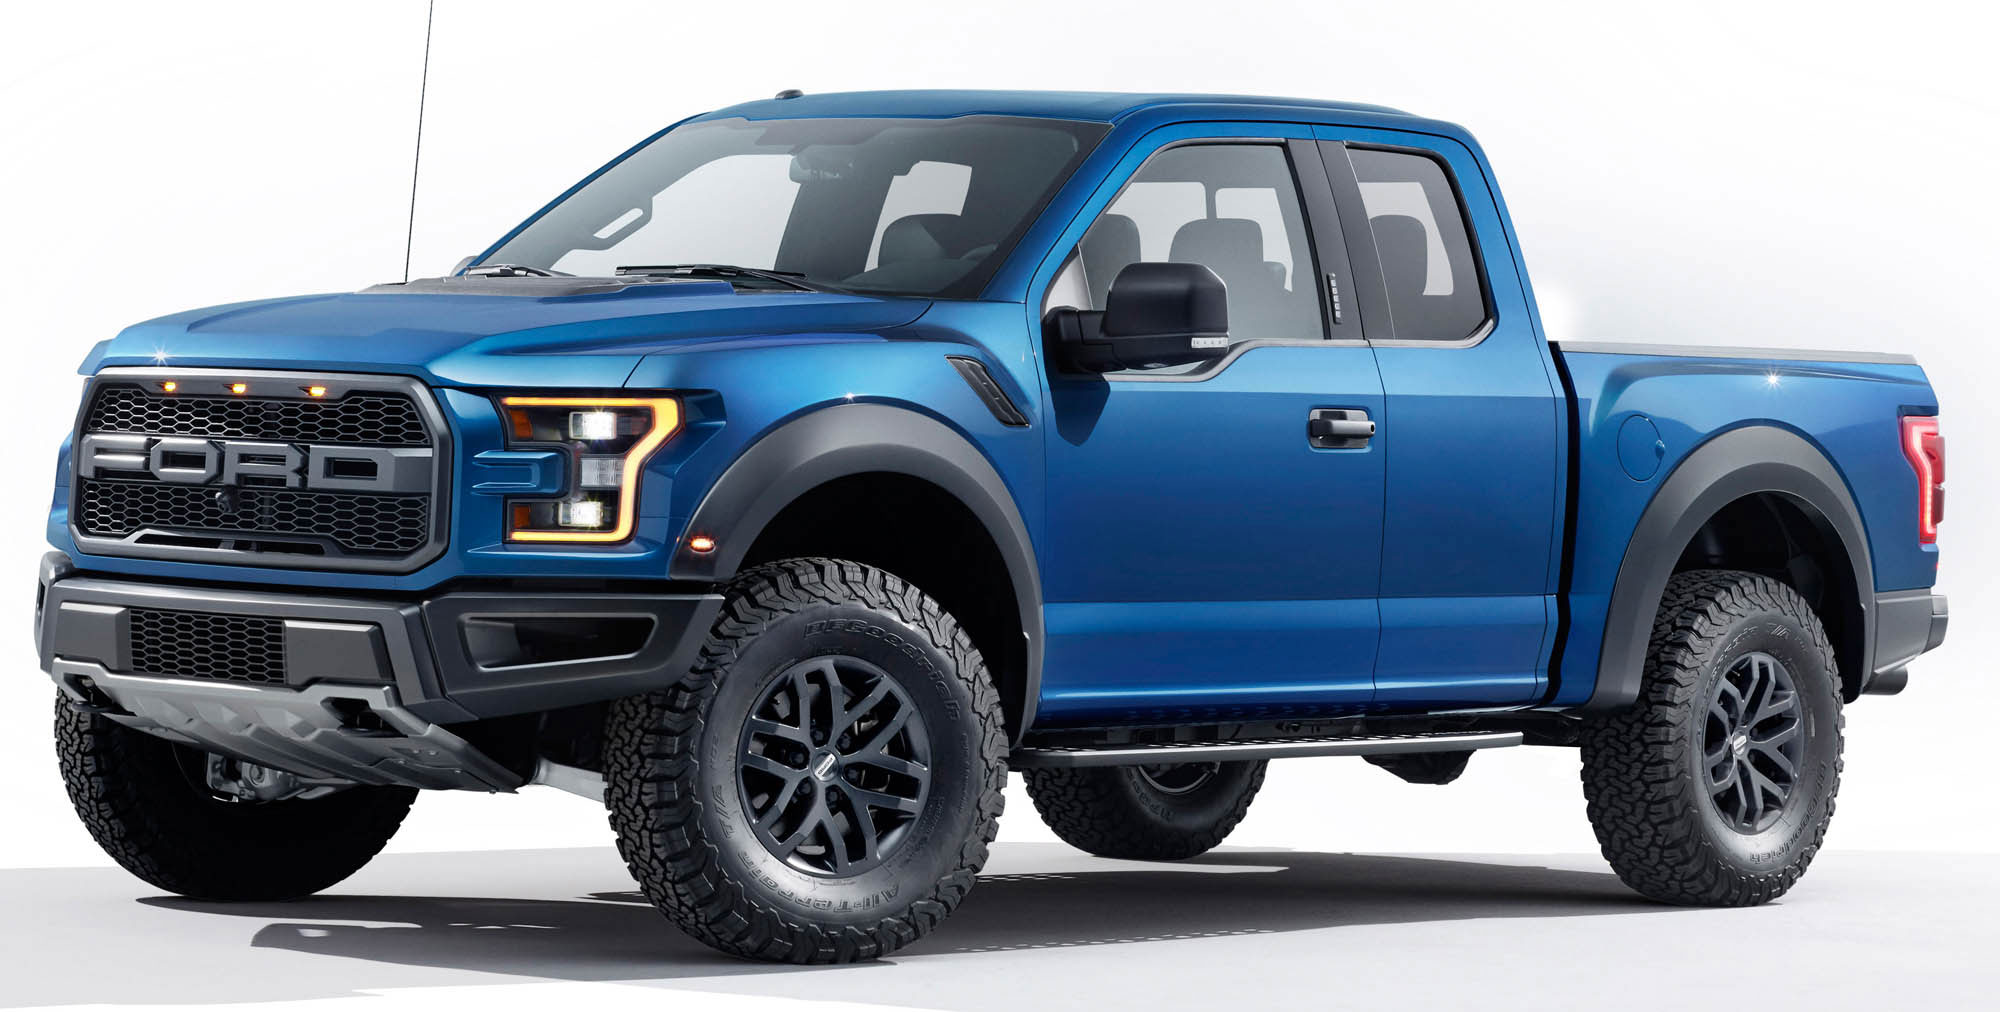 2016 Ford F 150 Raptor A High Performance Pickup Truck With Turbo And